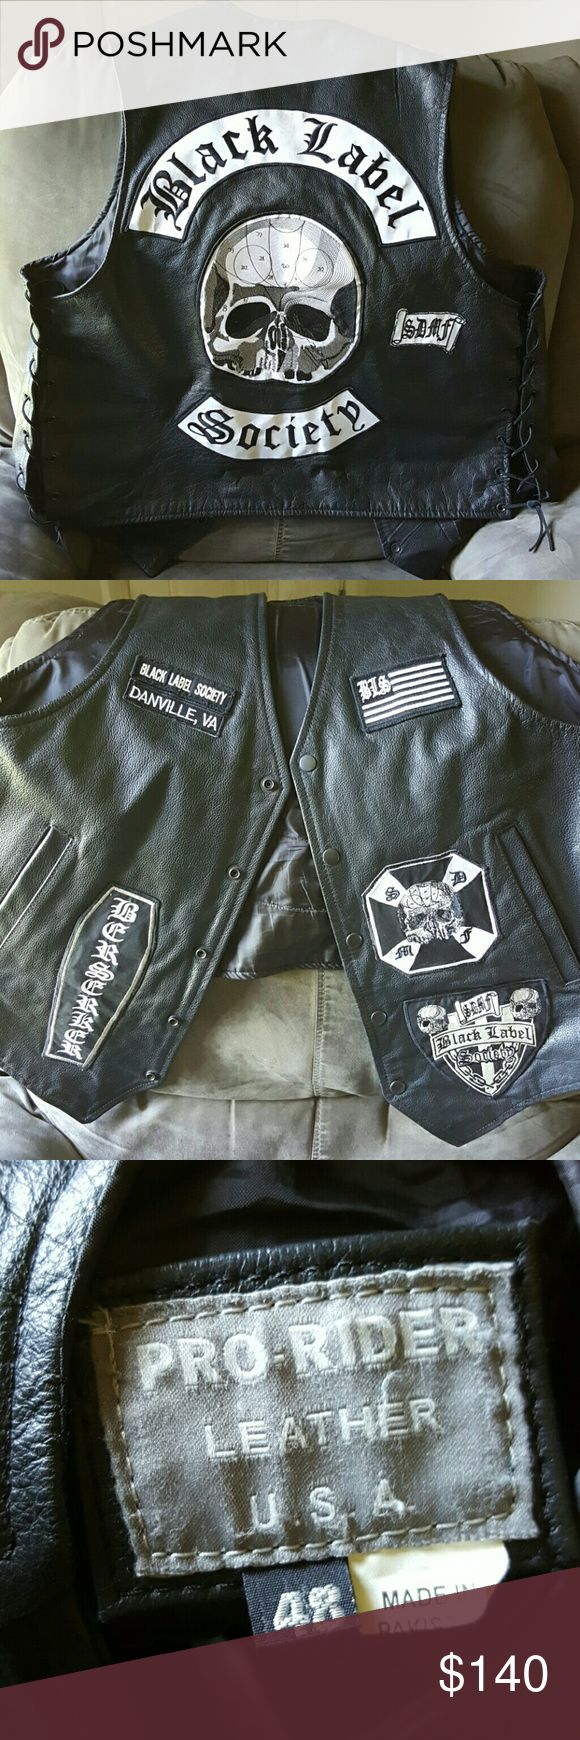 Black Label Society Leather Vest This was custom made for my guitarist.  You can't buy one like this from zakk wyldes website. The Danville va patch can easily be removed or replaced with your own city. It's a men's size 48. Genuine leather. Jackets & Coats Vests